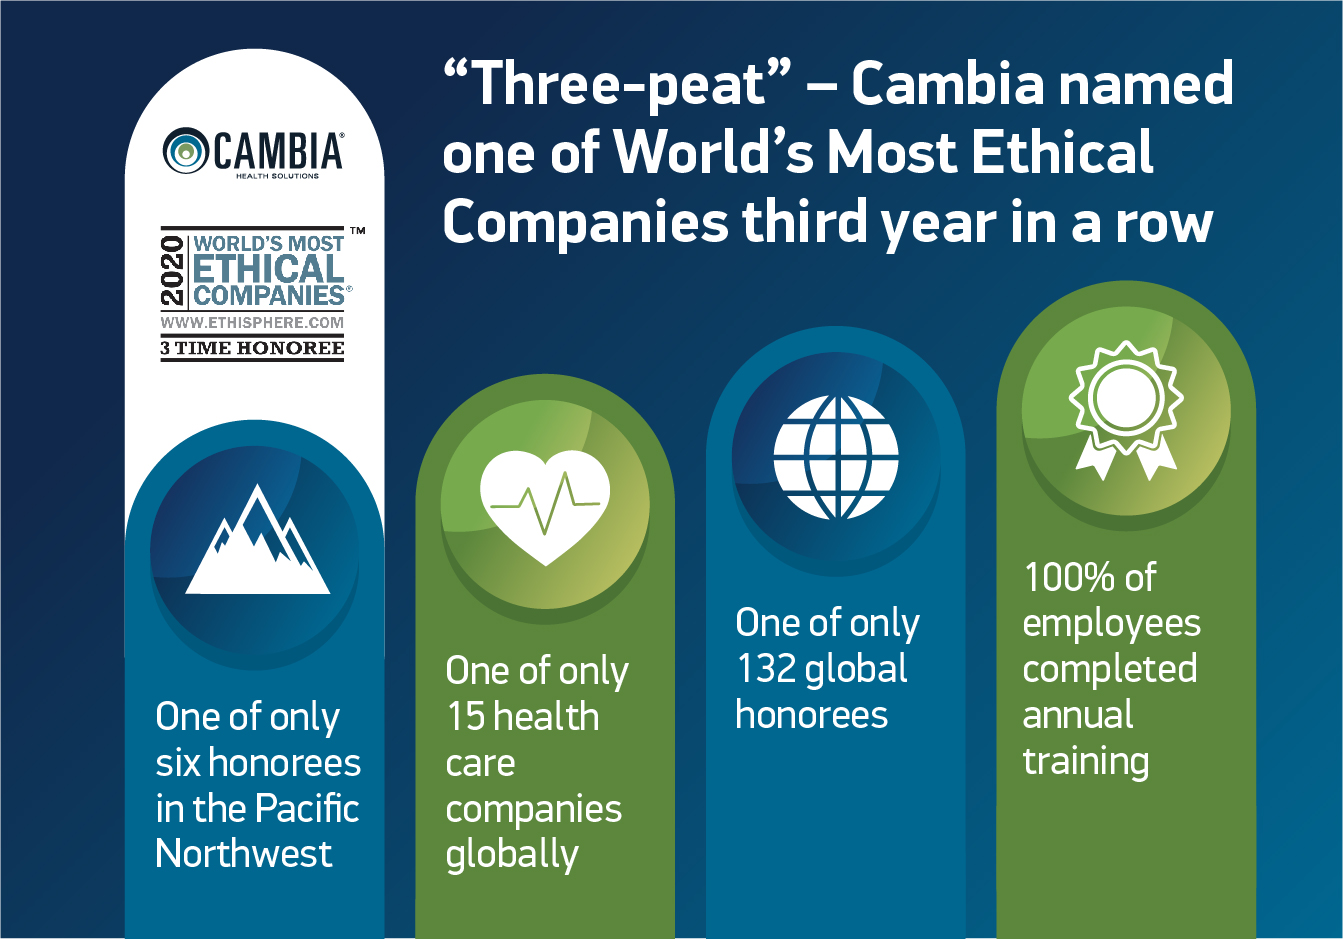 cambia health solutions world's most ethical award